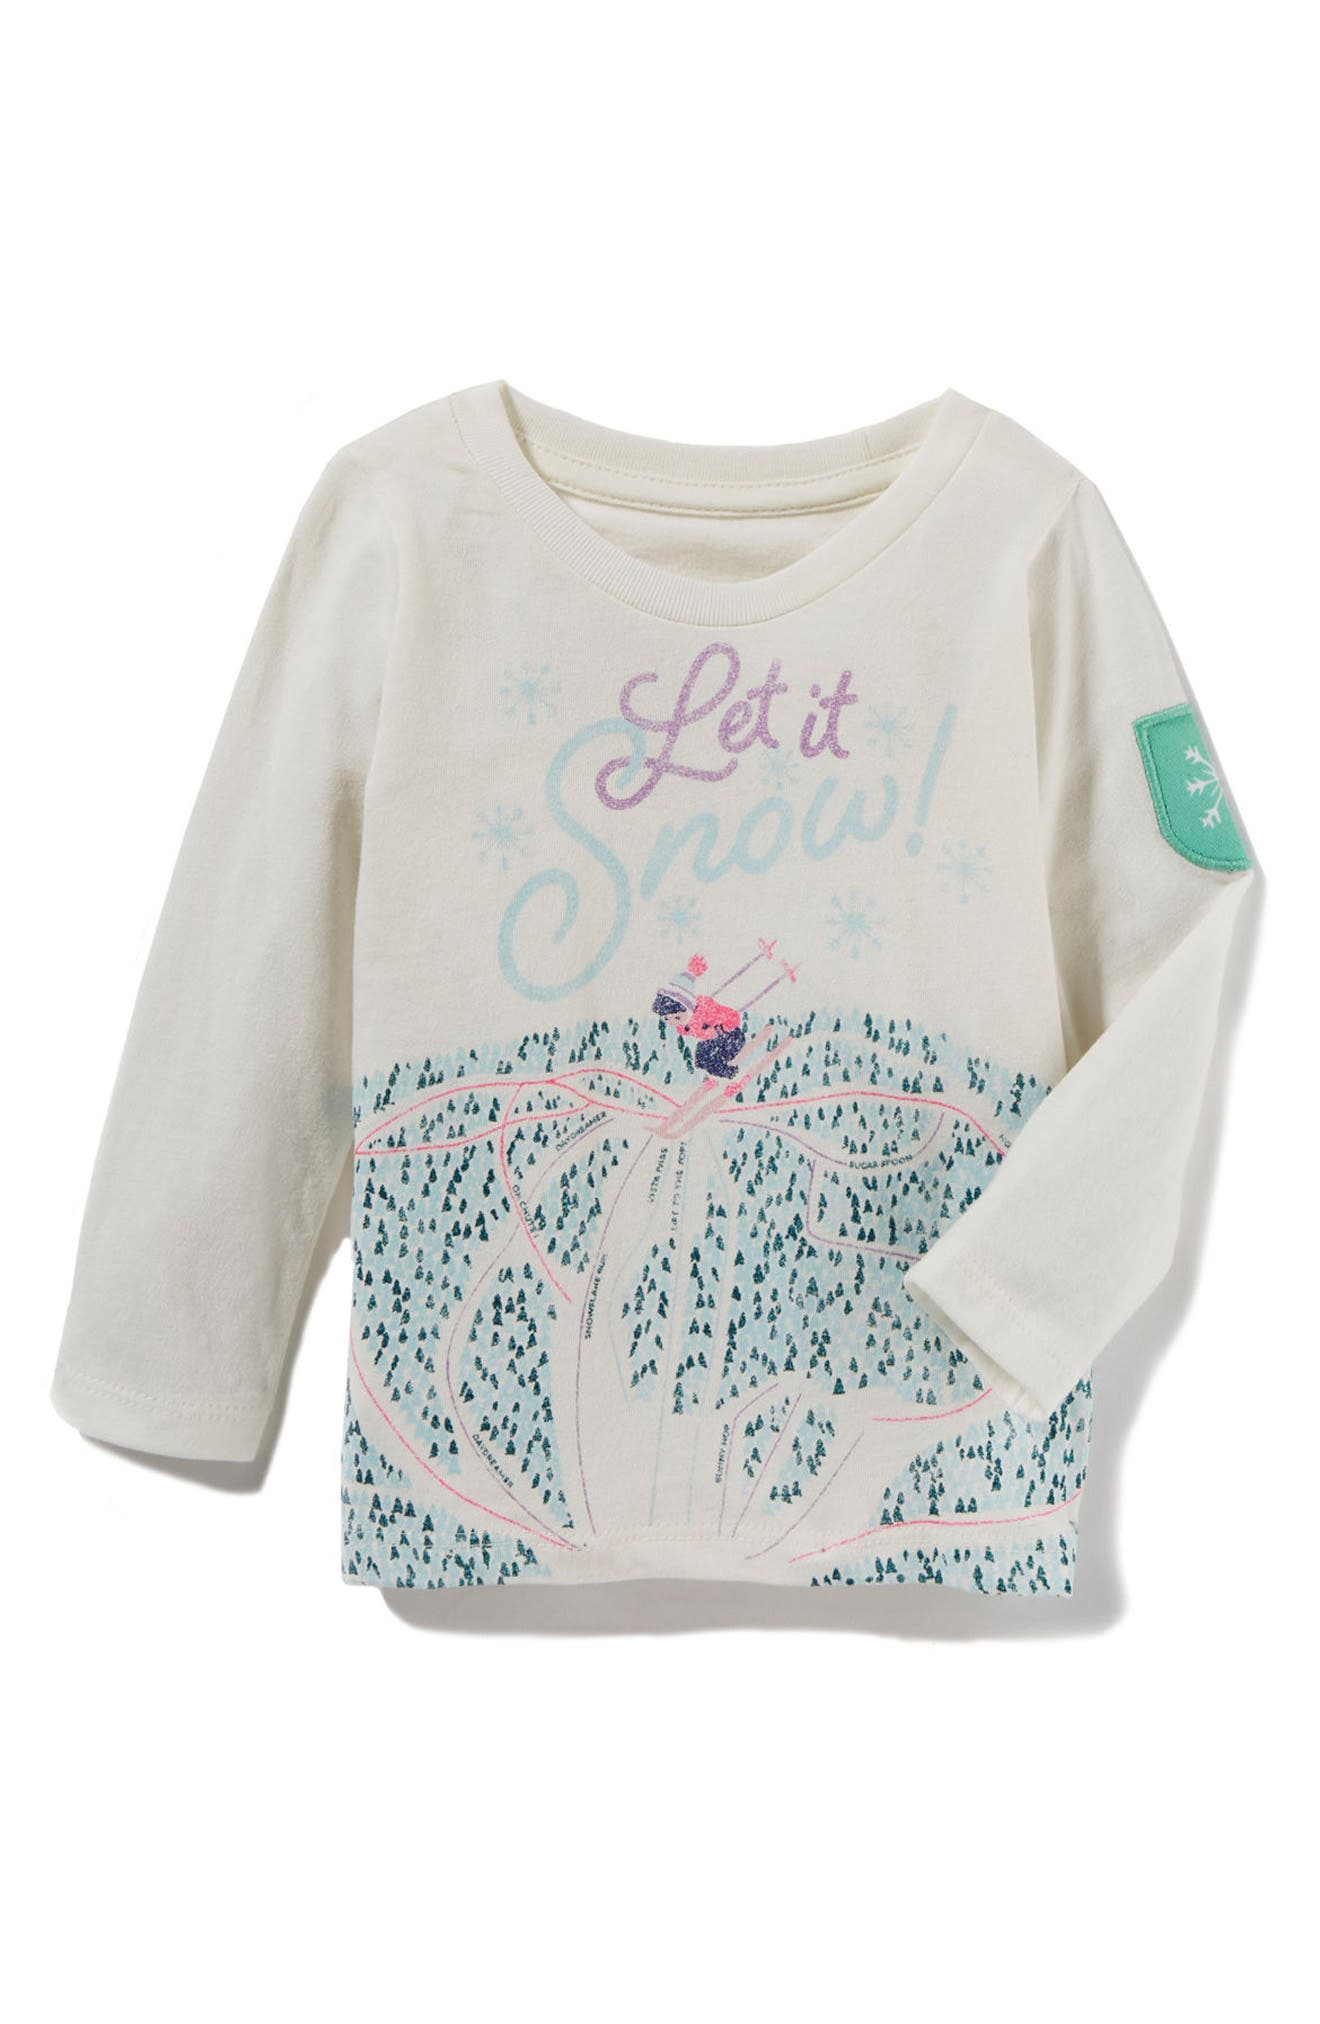 Let It Snow Graphic Tee,                             Main thumbnail 1, color,                             905